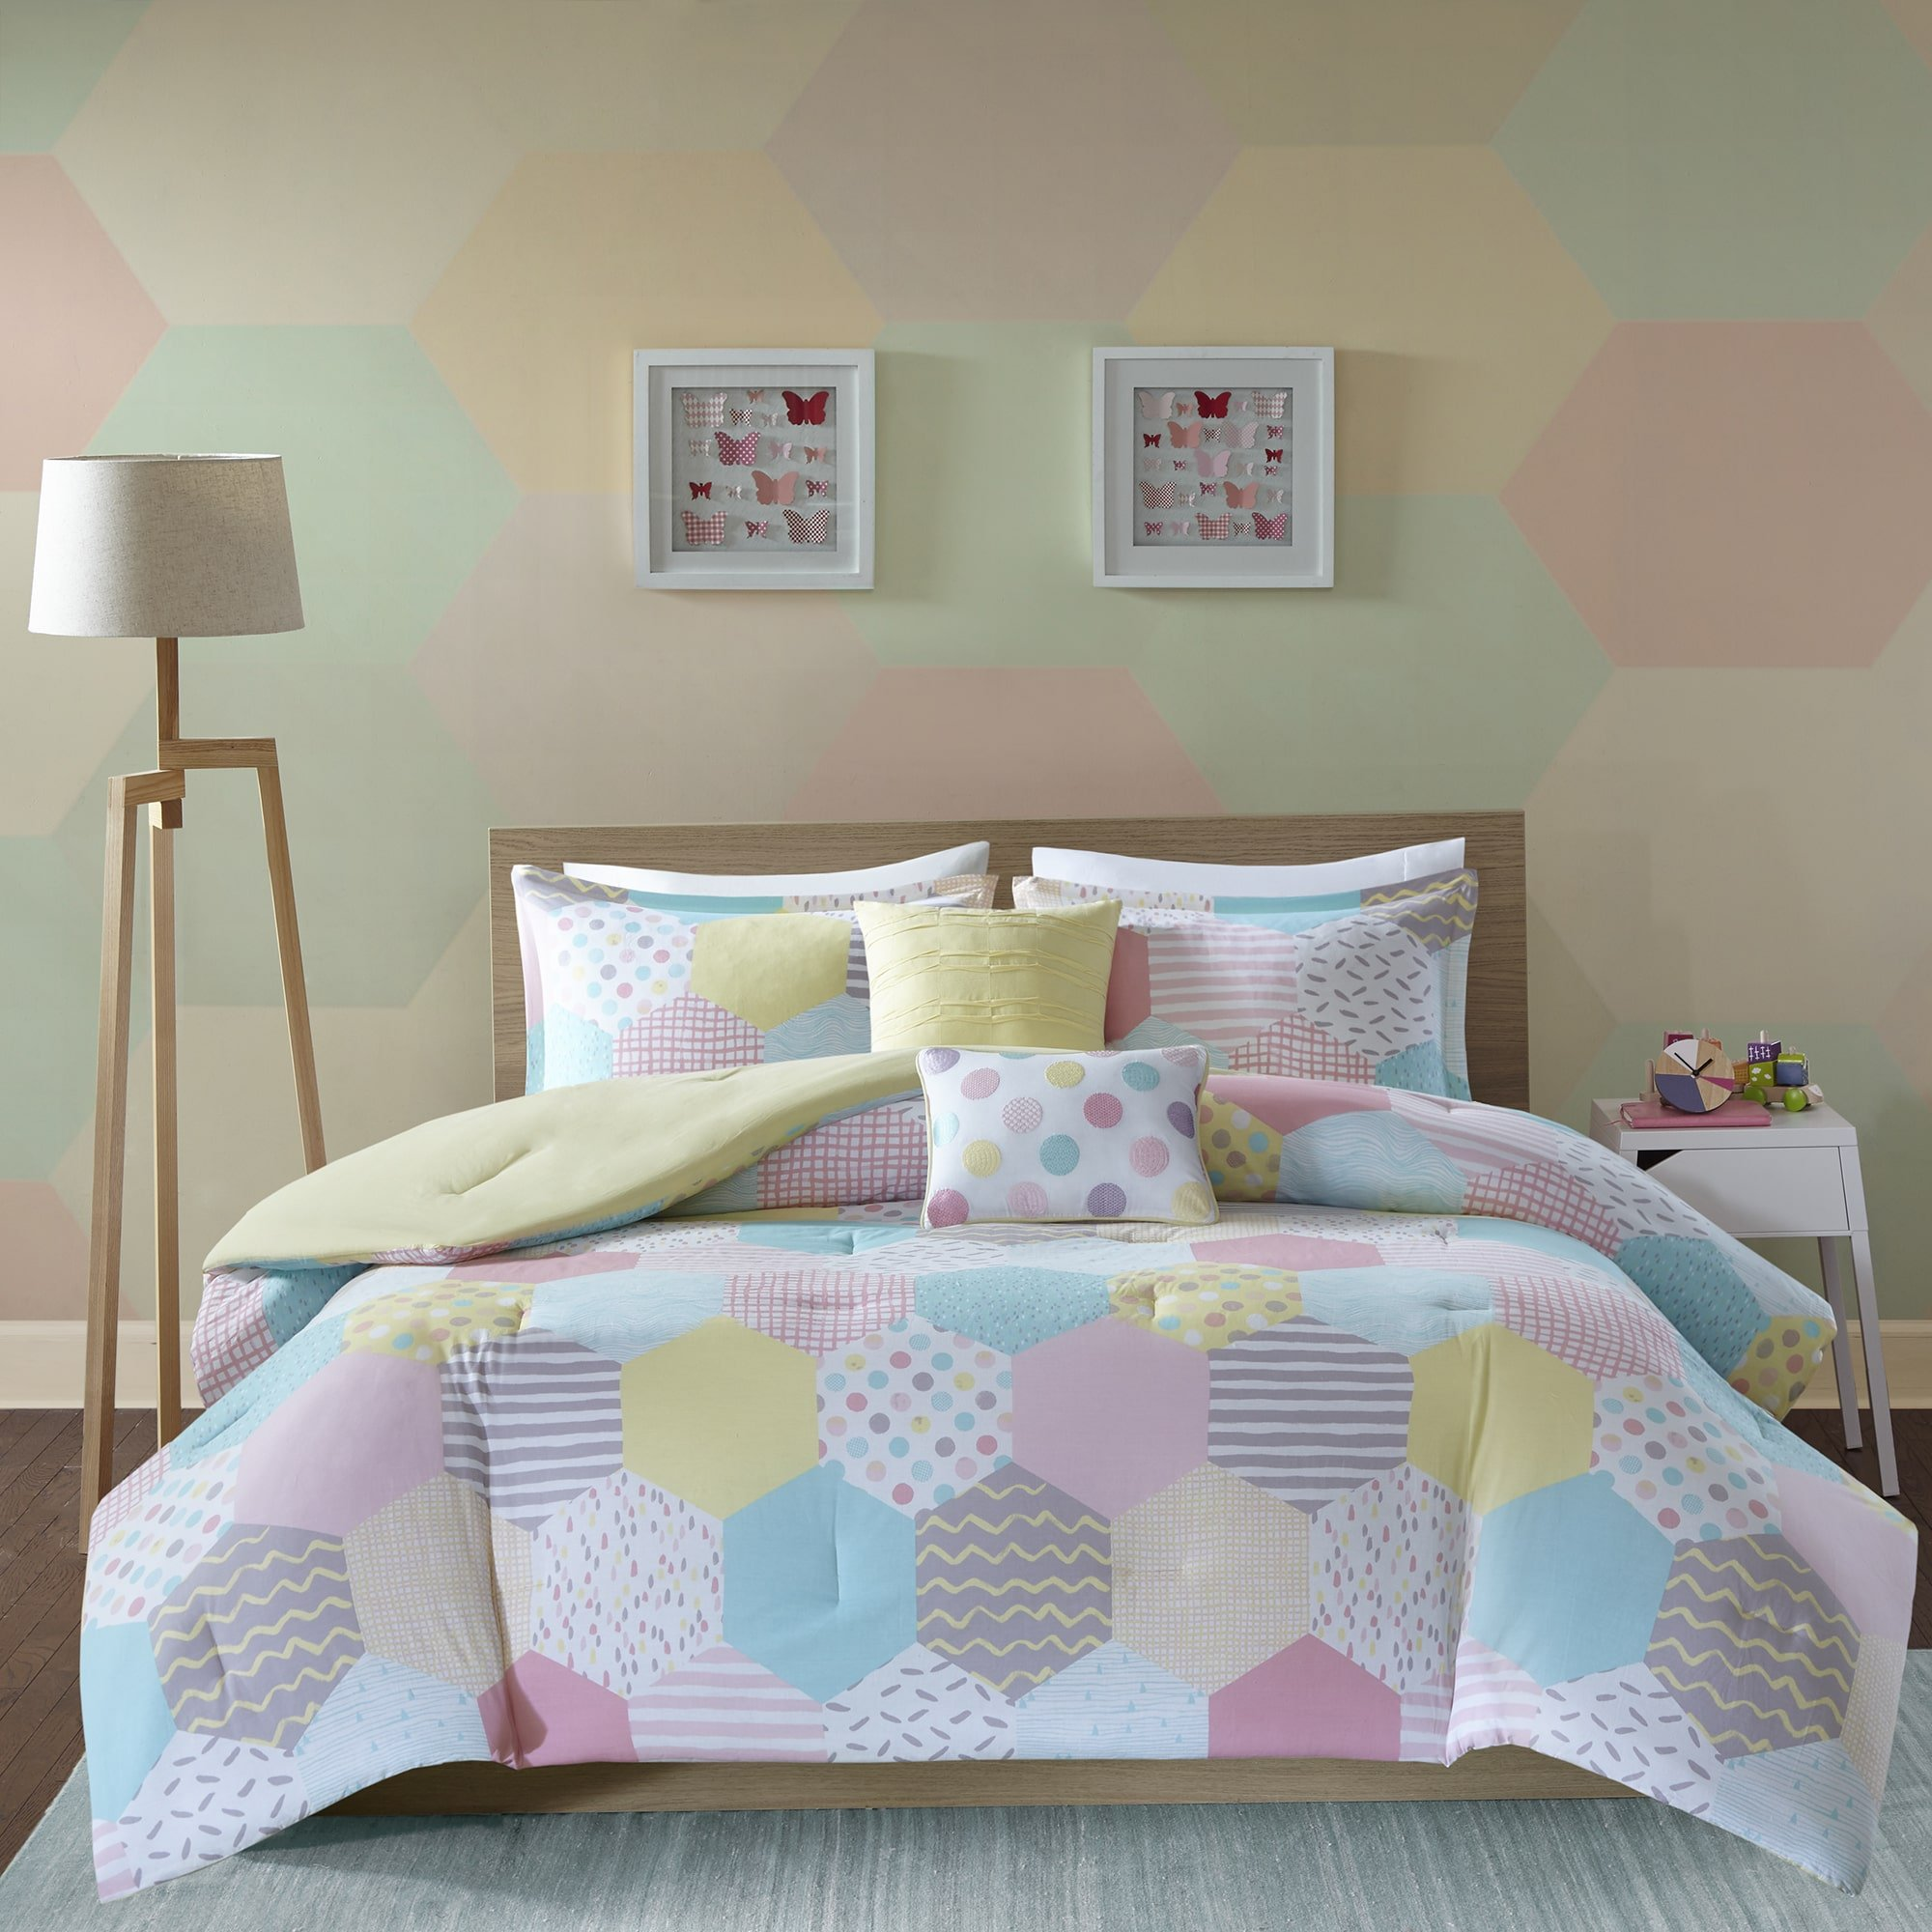 Lovely Soothing Pastels Dots/Patch/Stripes Would Go With Any Room Decor Hypoallergenic Machine Washable Super Soft Comfy Kids PINK/YELLOW/PURPLE Tana Cotton TWIN/TWIN XL Comforter Set